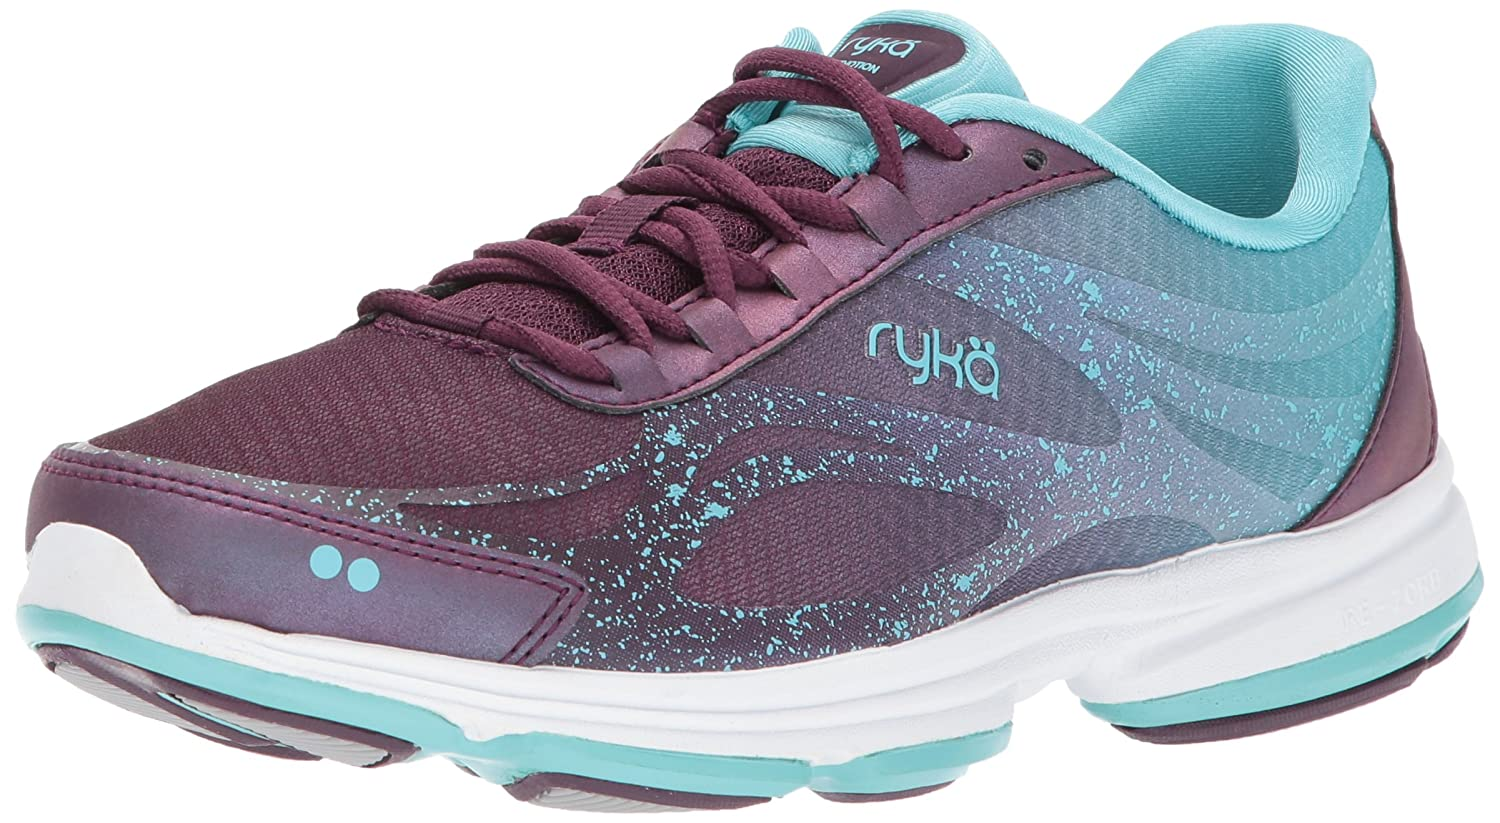 Ryka Women's Devo Plus B(M) 2 Walking Shoe B072P88G69 6 B(M) Plus US|Plum/Turquoise 2cb227